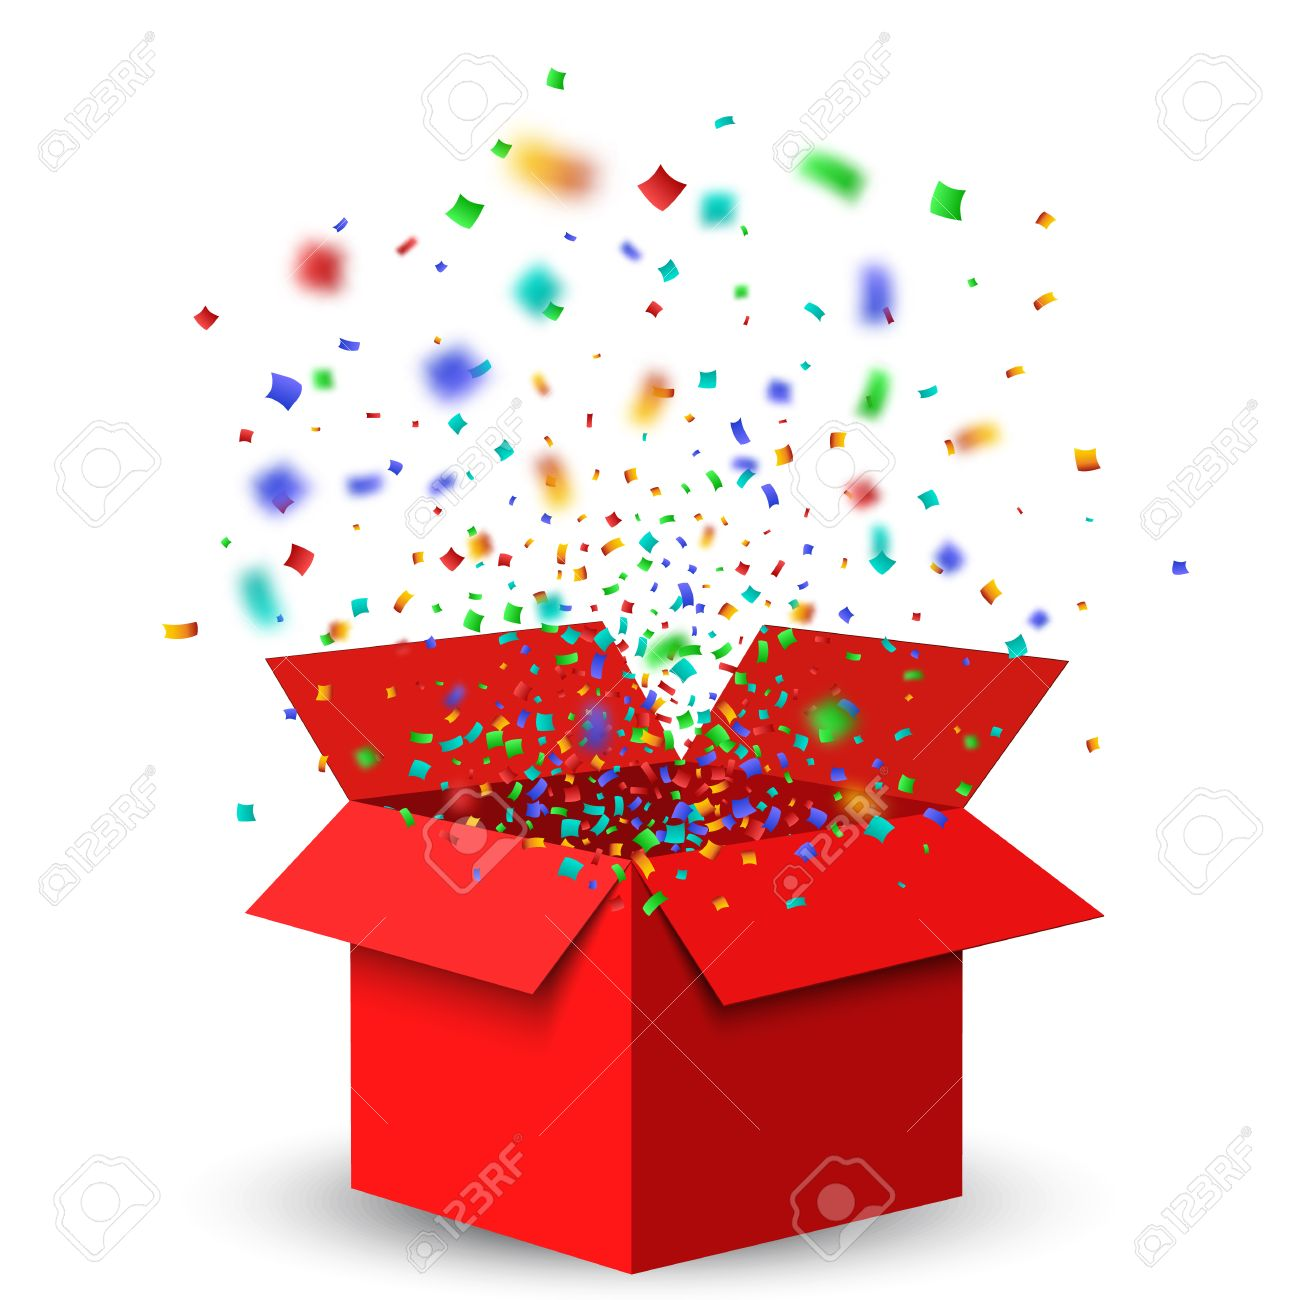 Open Red Gift Box And Confetti Christmas Background Royalty Free Cliparts Vectors And Stock Illustration Image 60315532